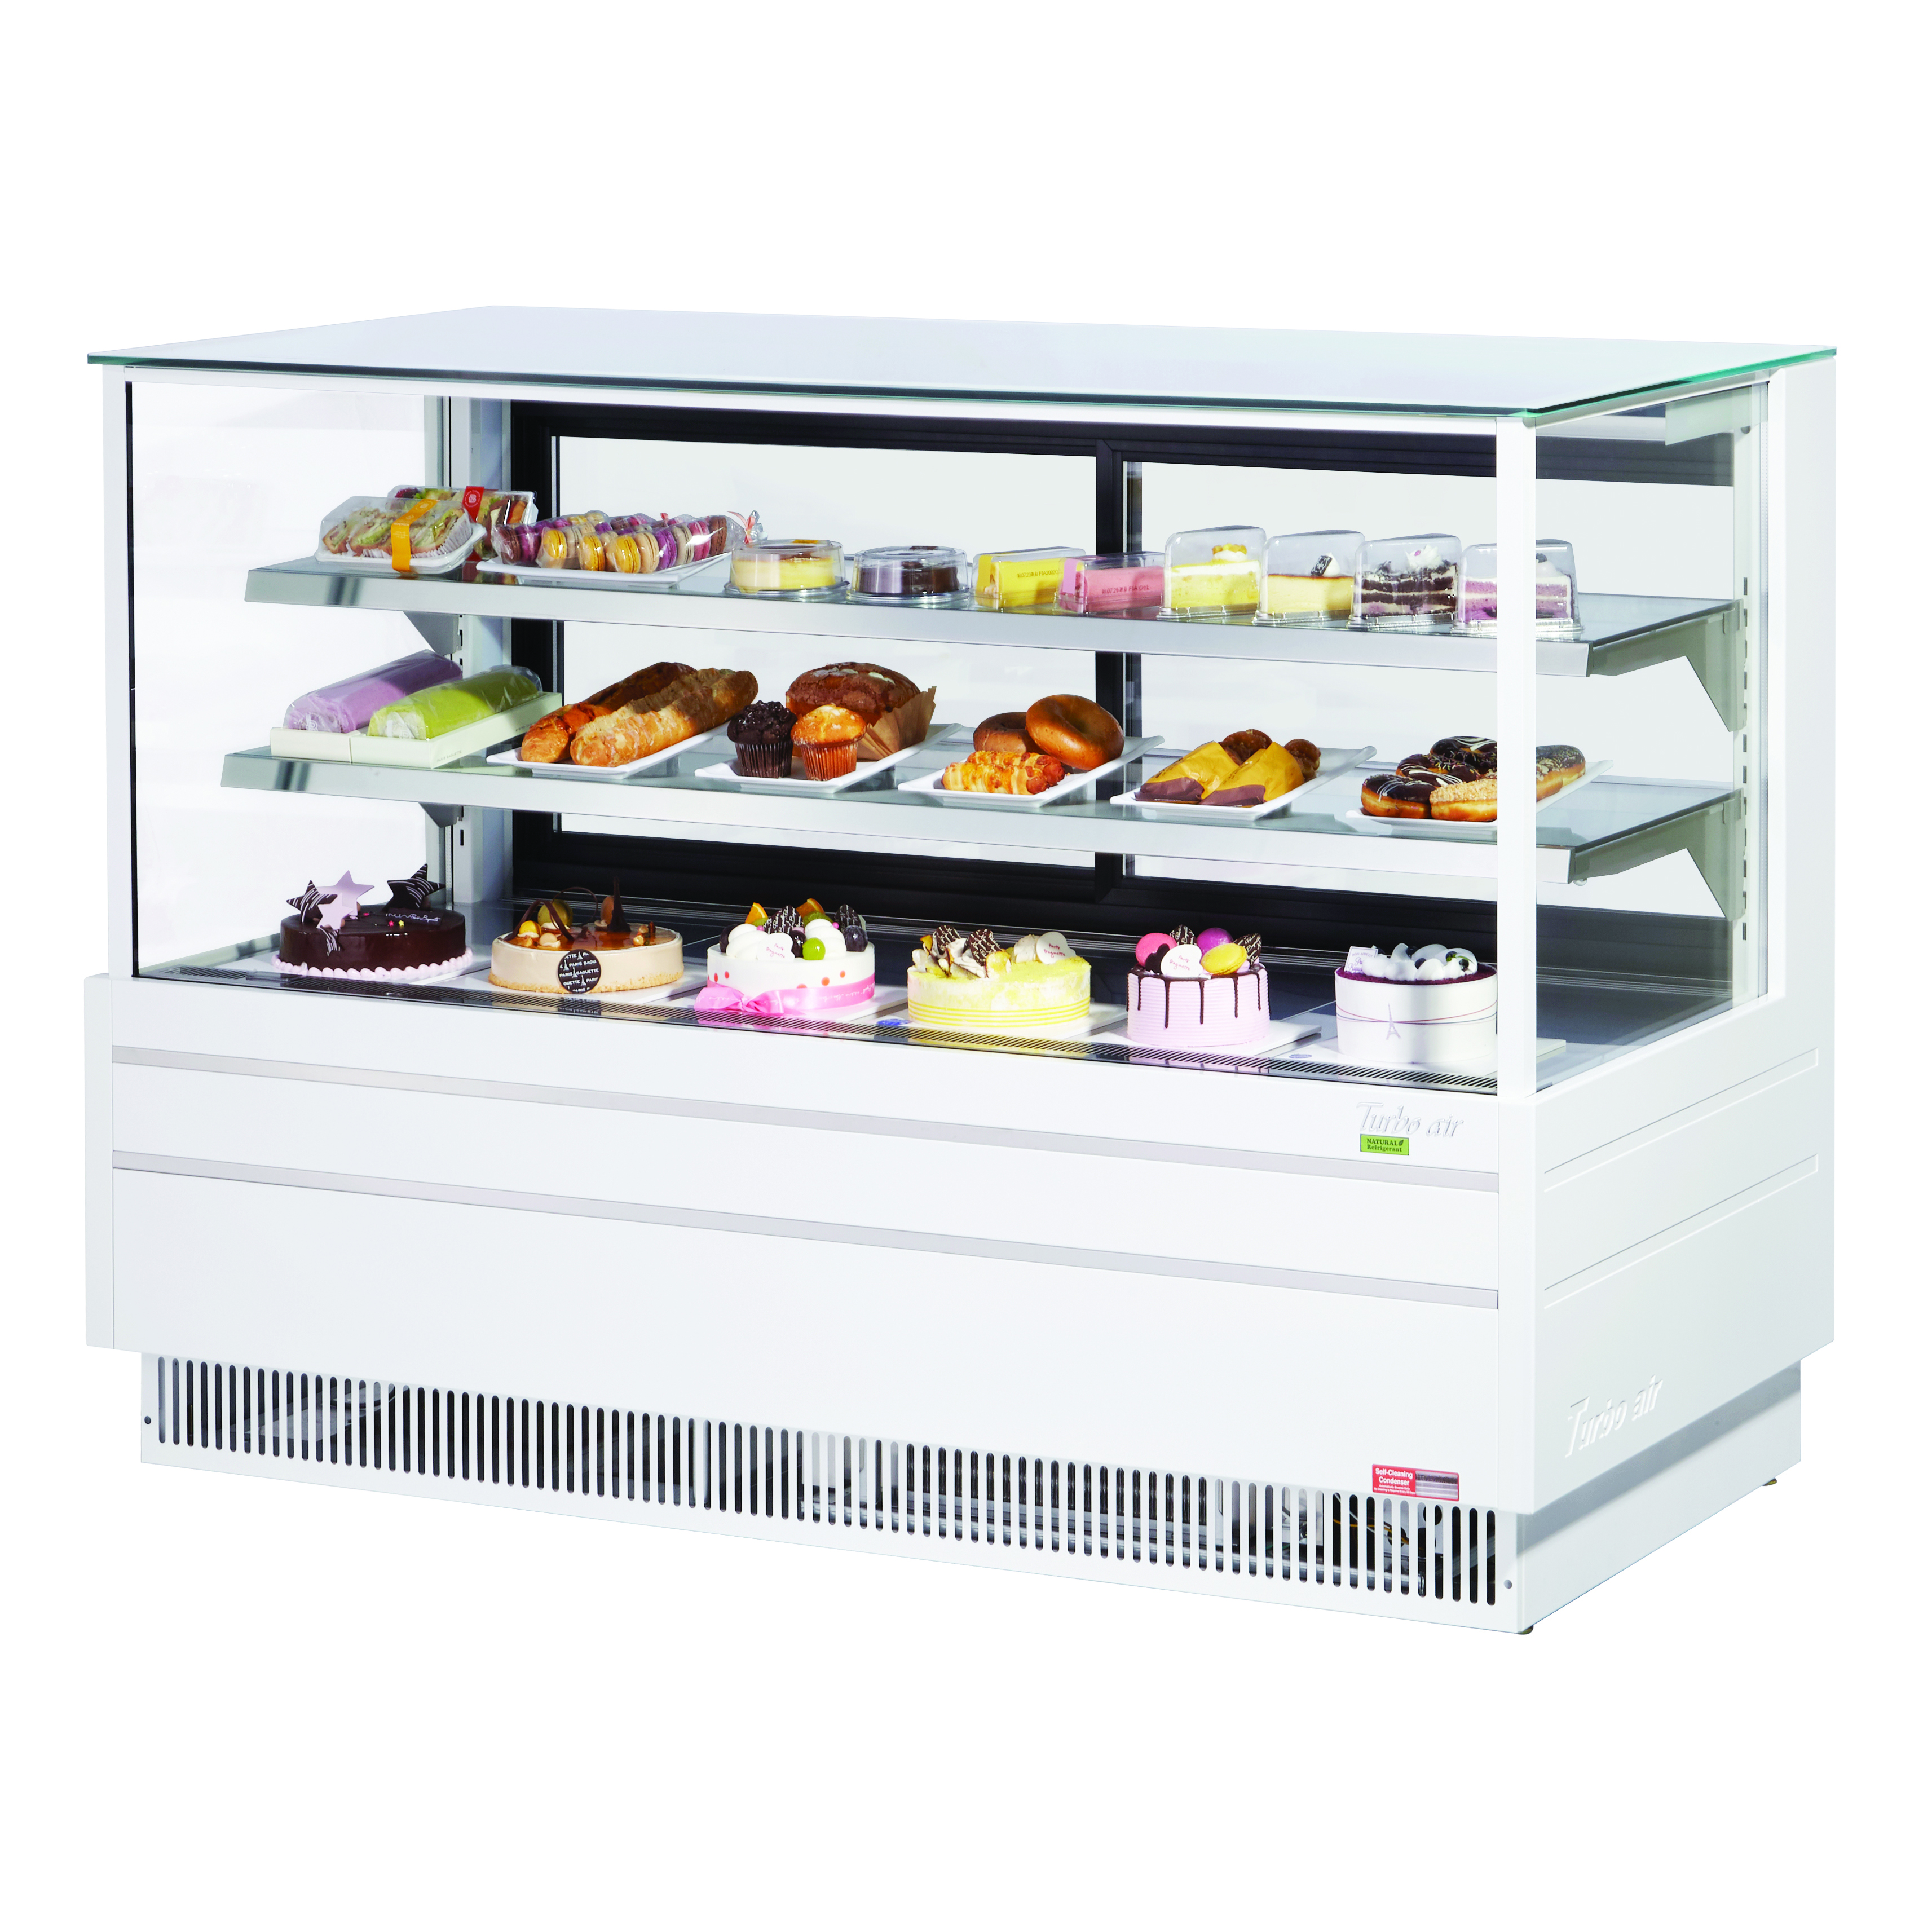 Turbo Air TCGB-60UF-W(B)-N display case, refrigerated